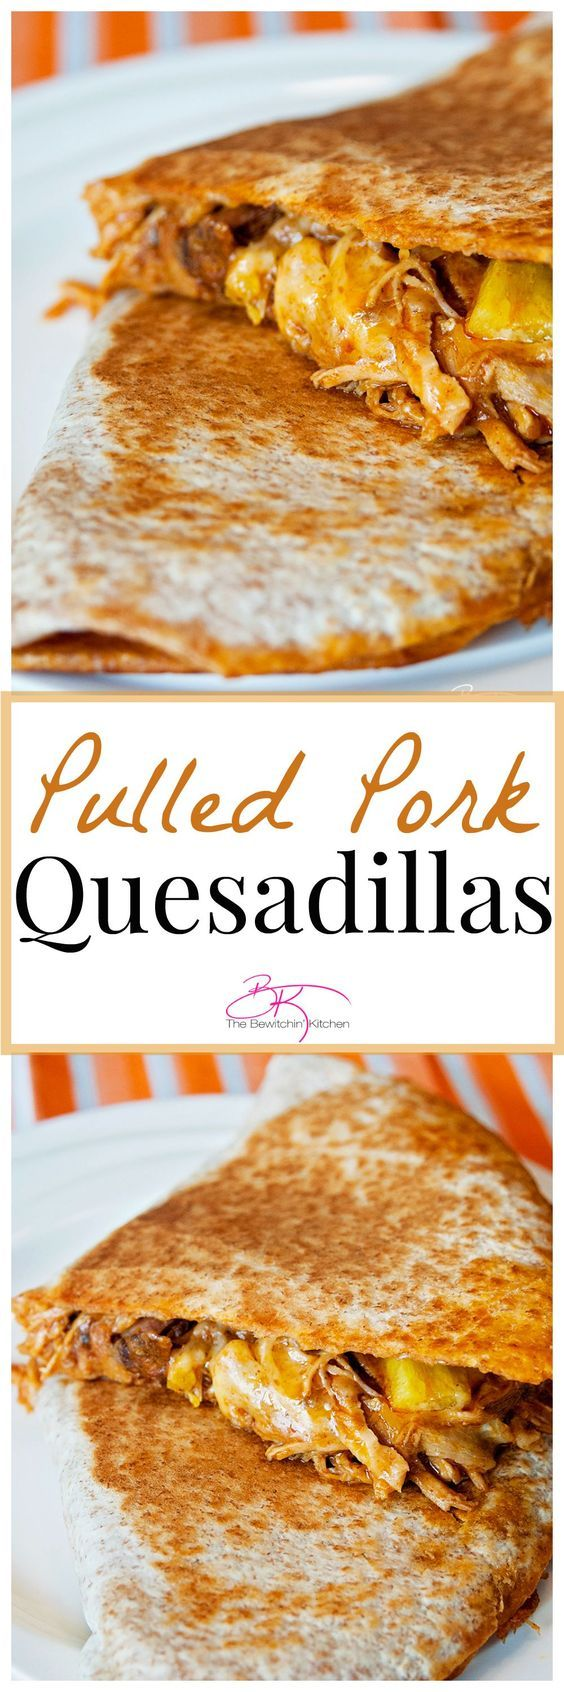 Pulled pork quesadillas. A delicious slow cooker recipe made with a mexican twist! | The Bewitchin' Kitchen